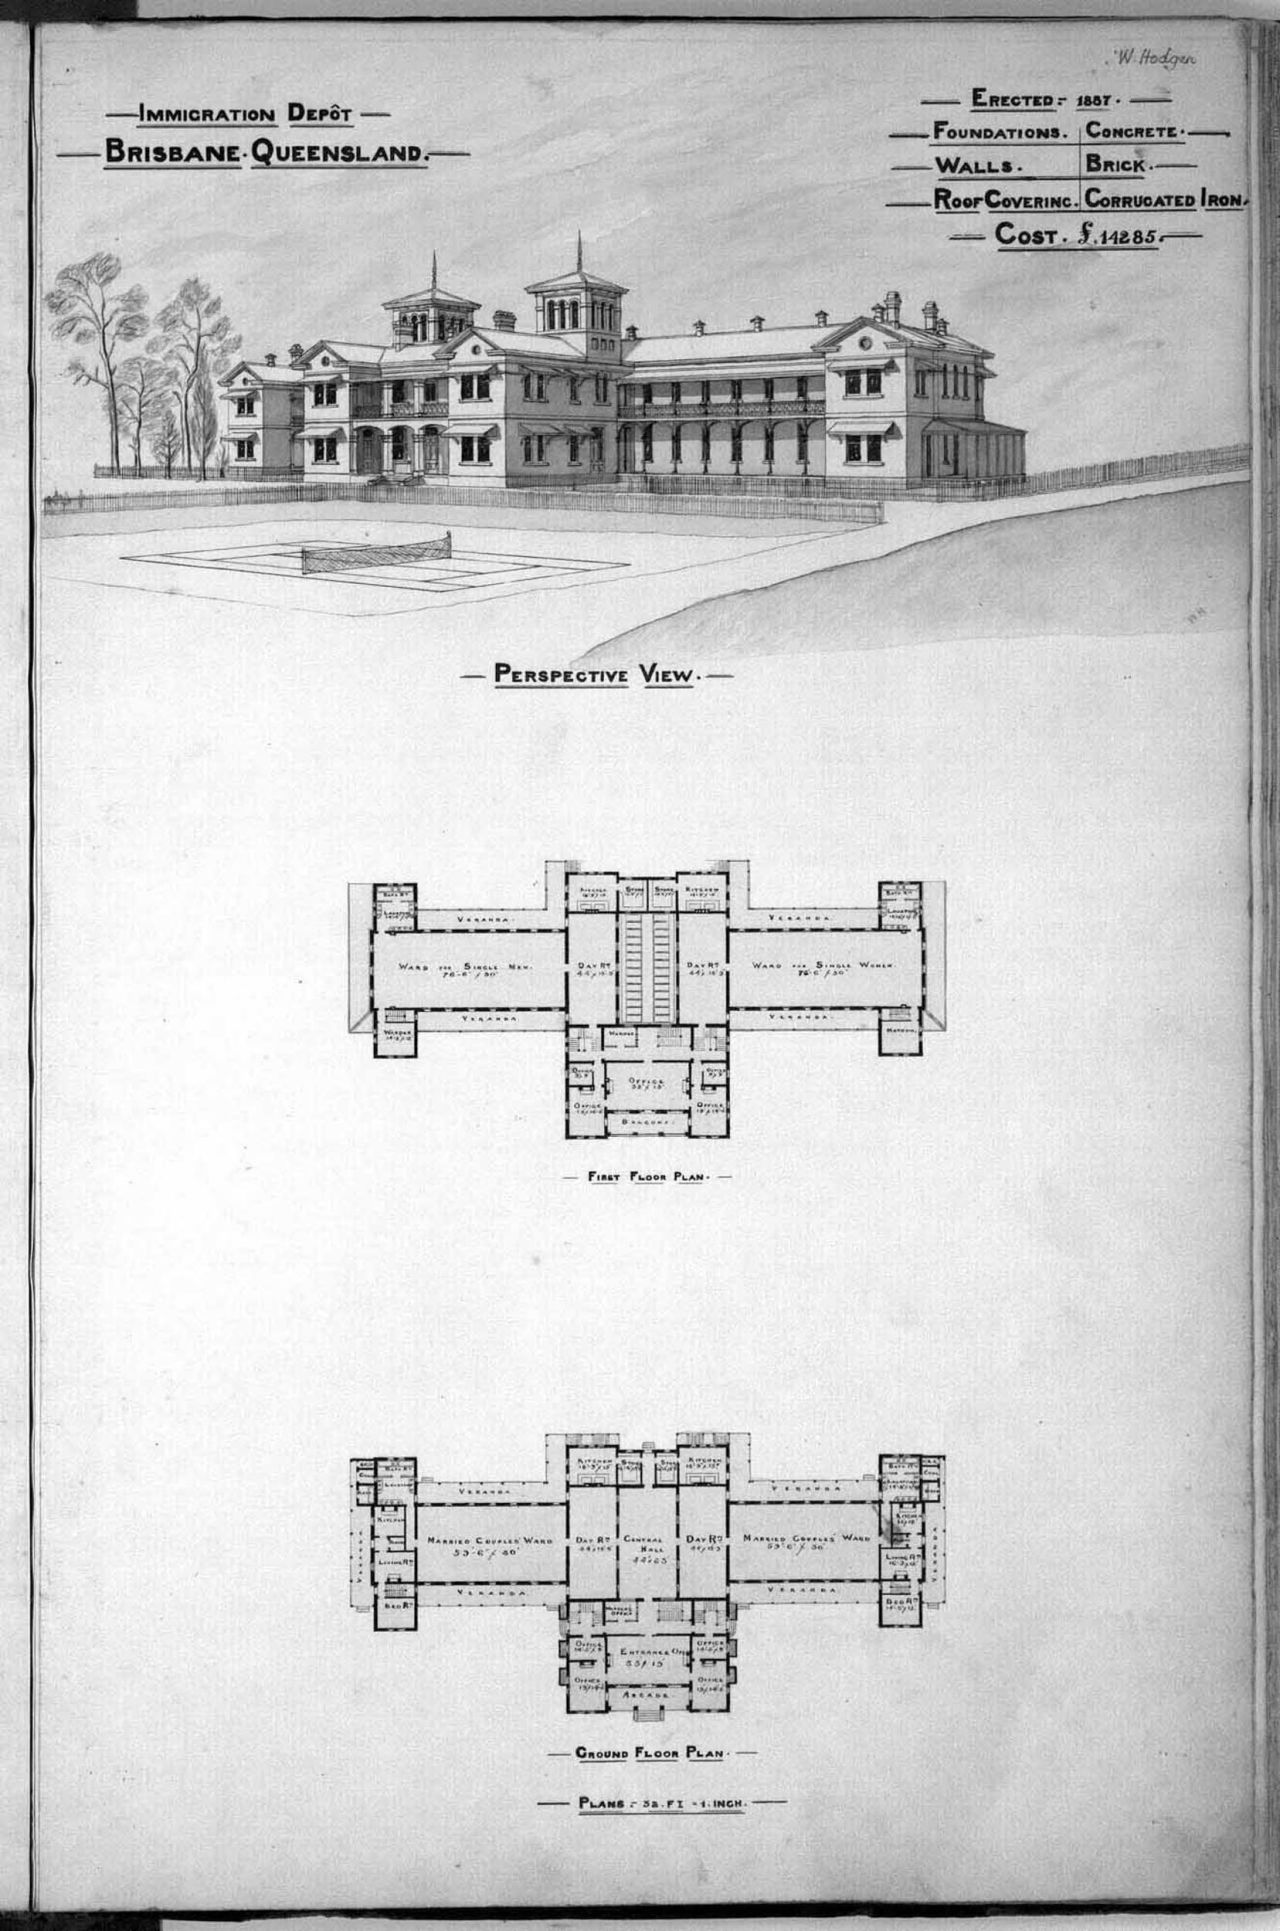 1888 / Architectural plans and perspective drawing of the Immigration Depot, Brisbane / Queensland State Archives / Digital ID 2580